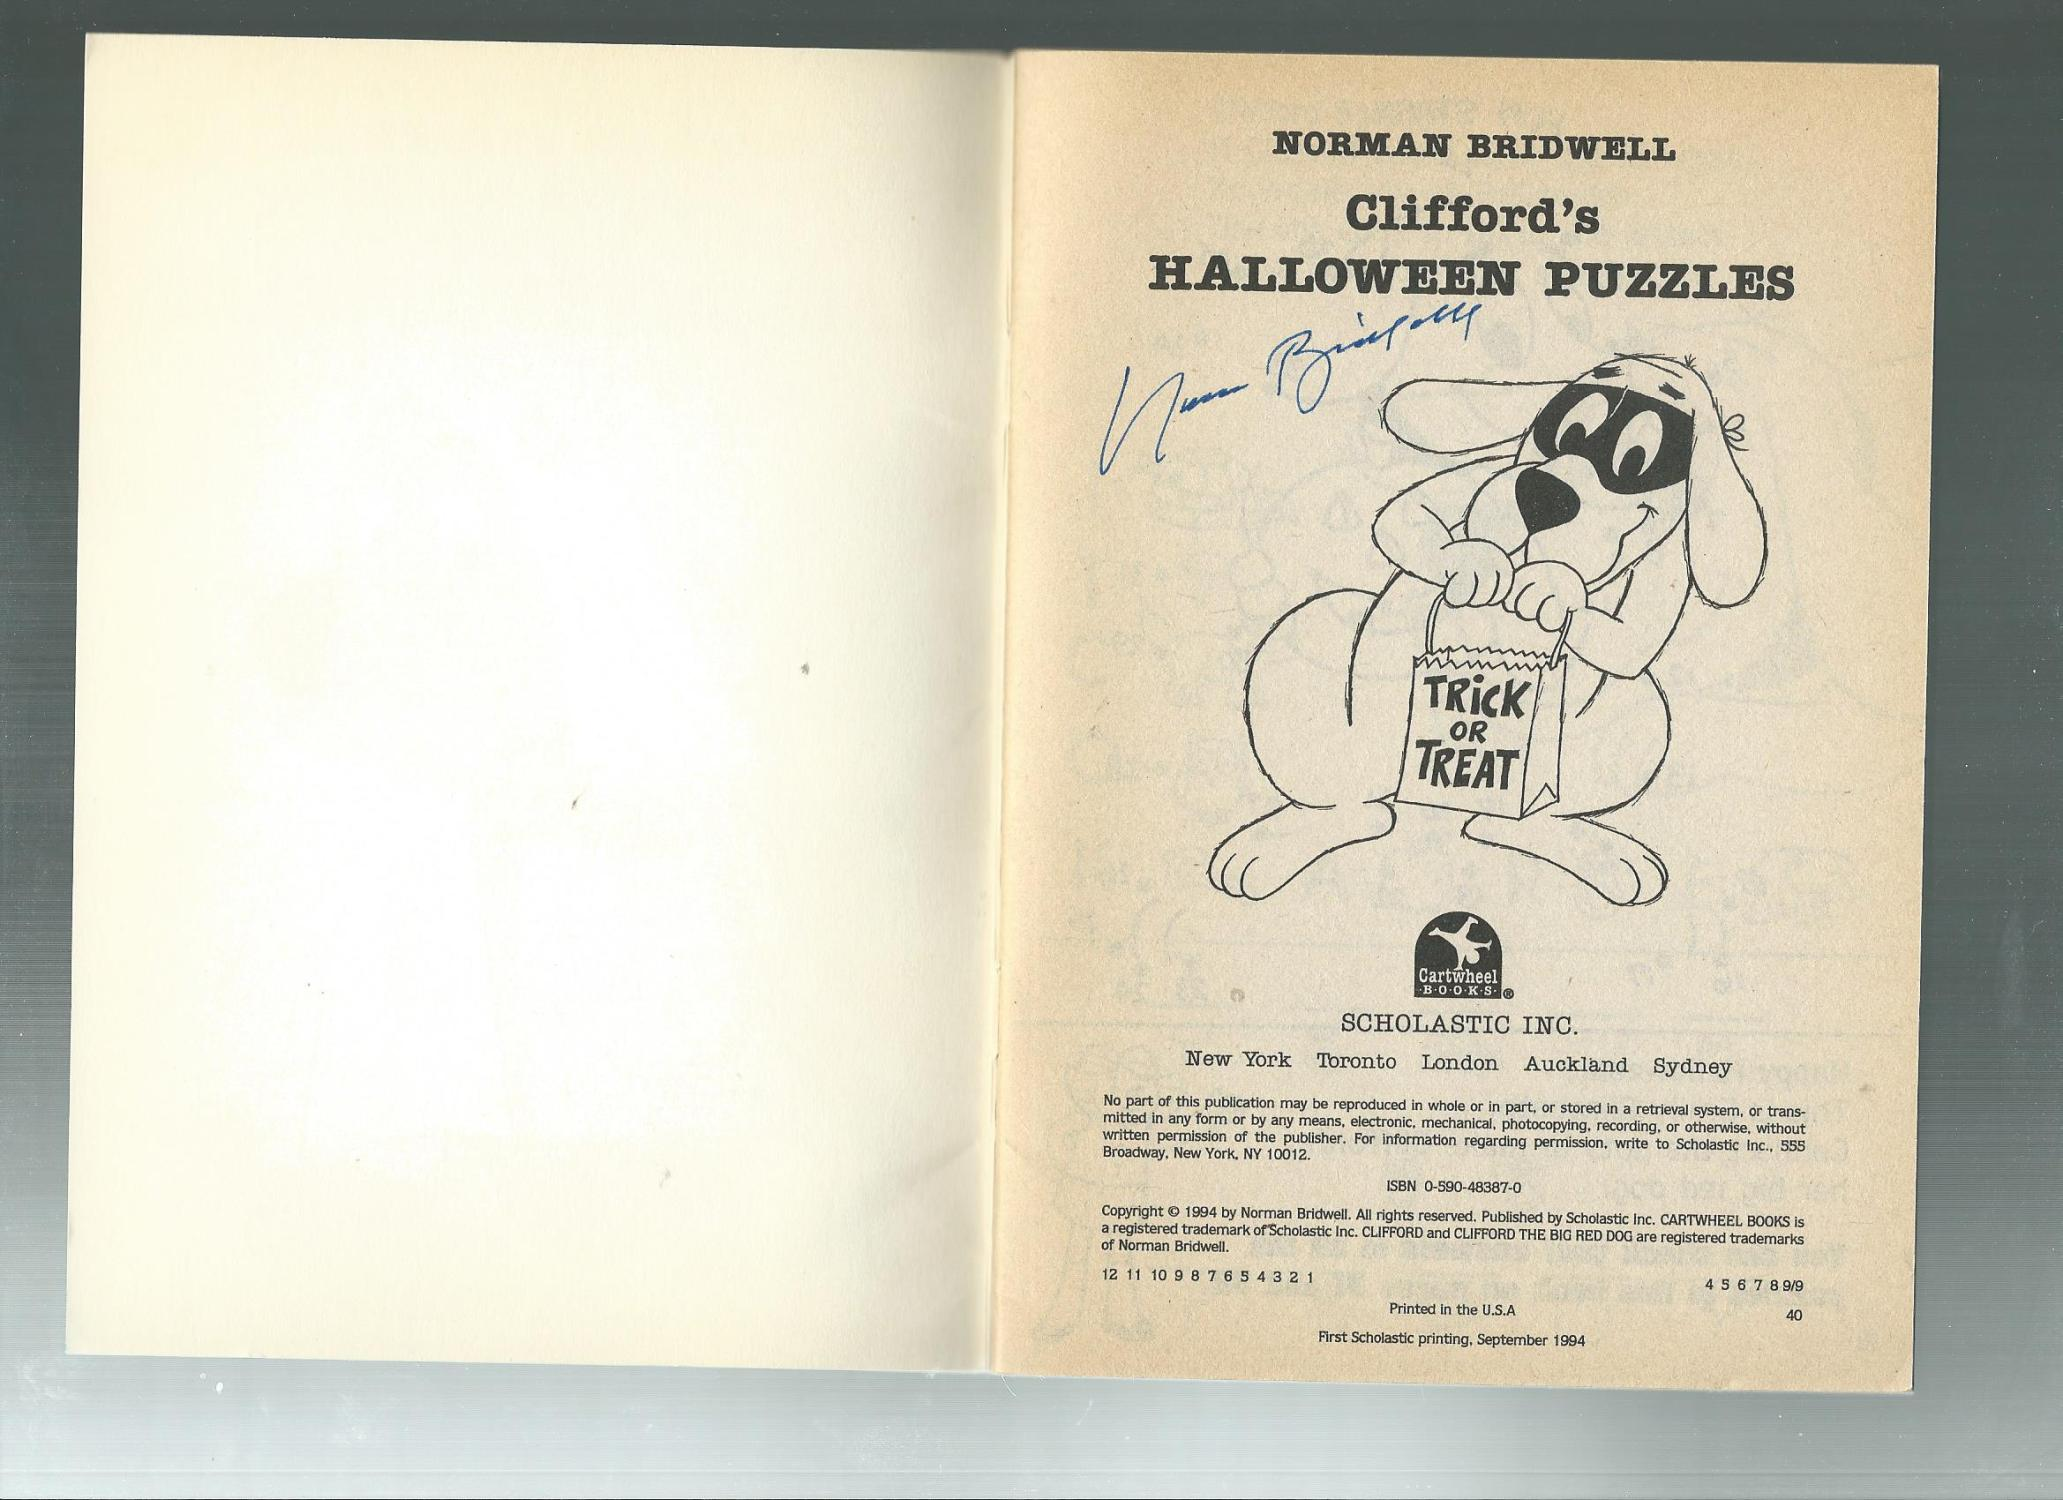 norman cliffords halloween puzzles bridwell